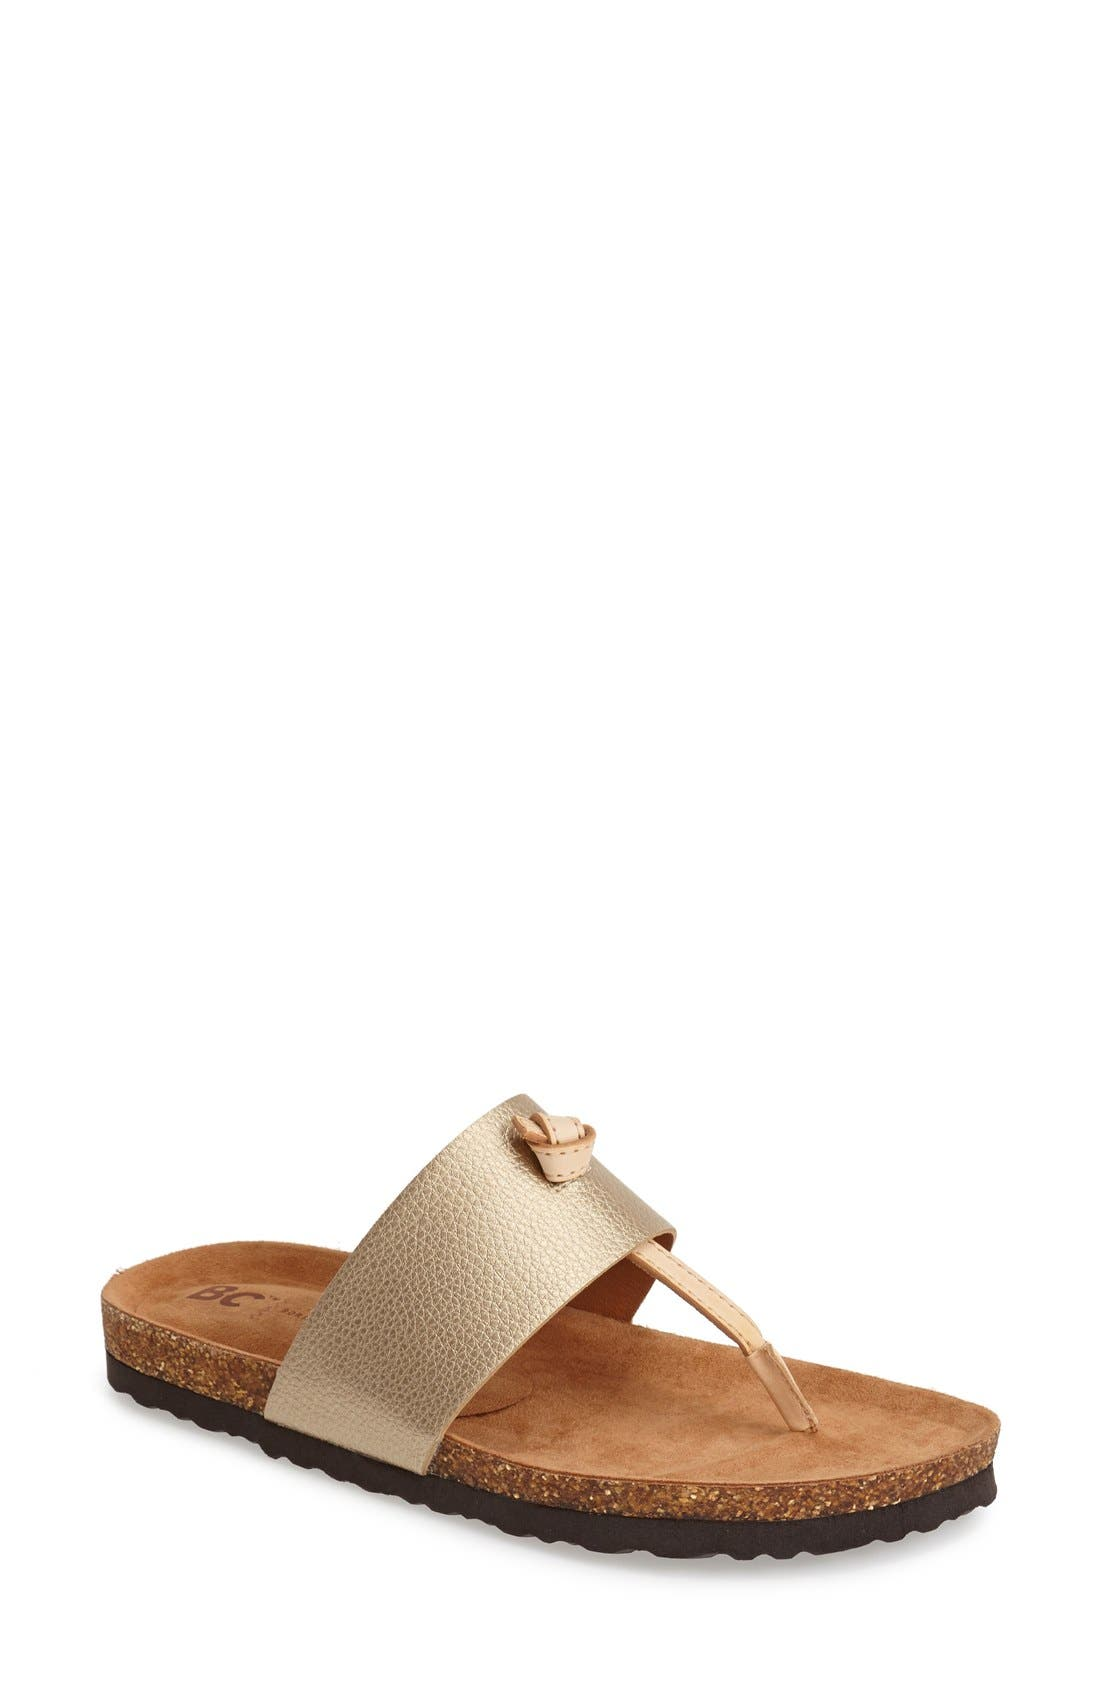 Alternate Image 1 Selected - BC Footwear 'Lynx' Faux Leather Thong Sandal (Women)